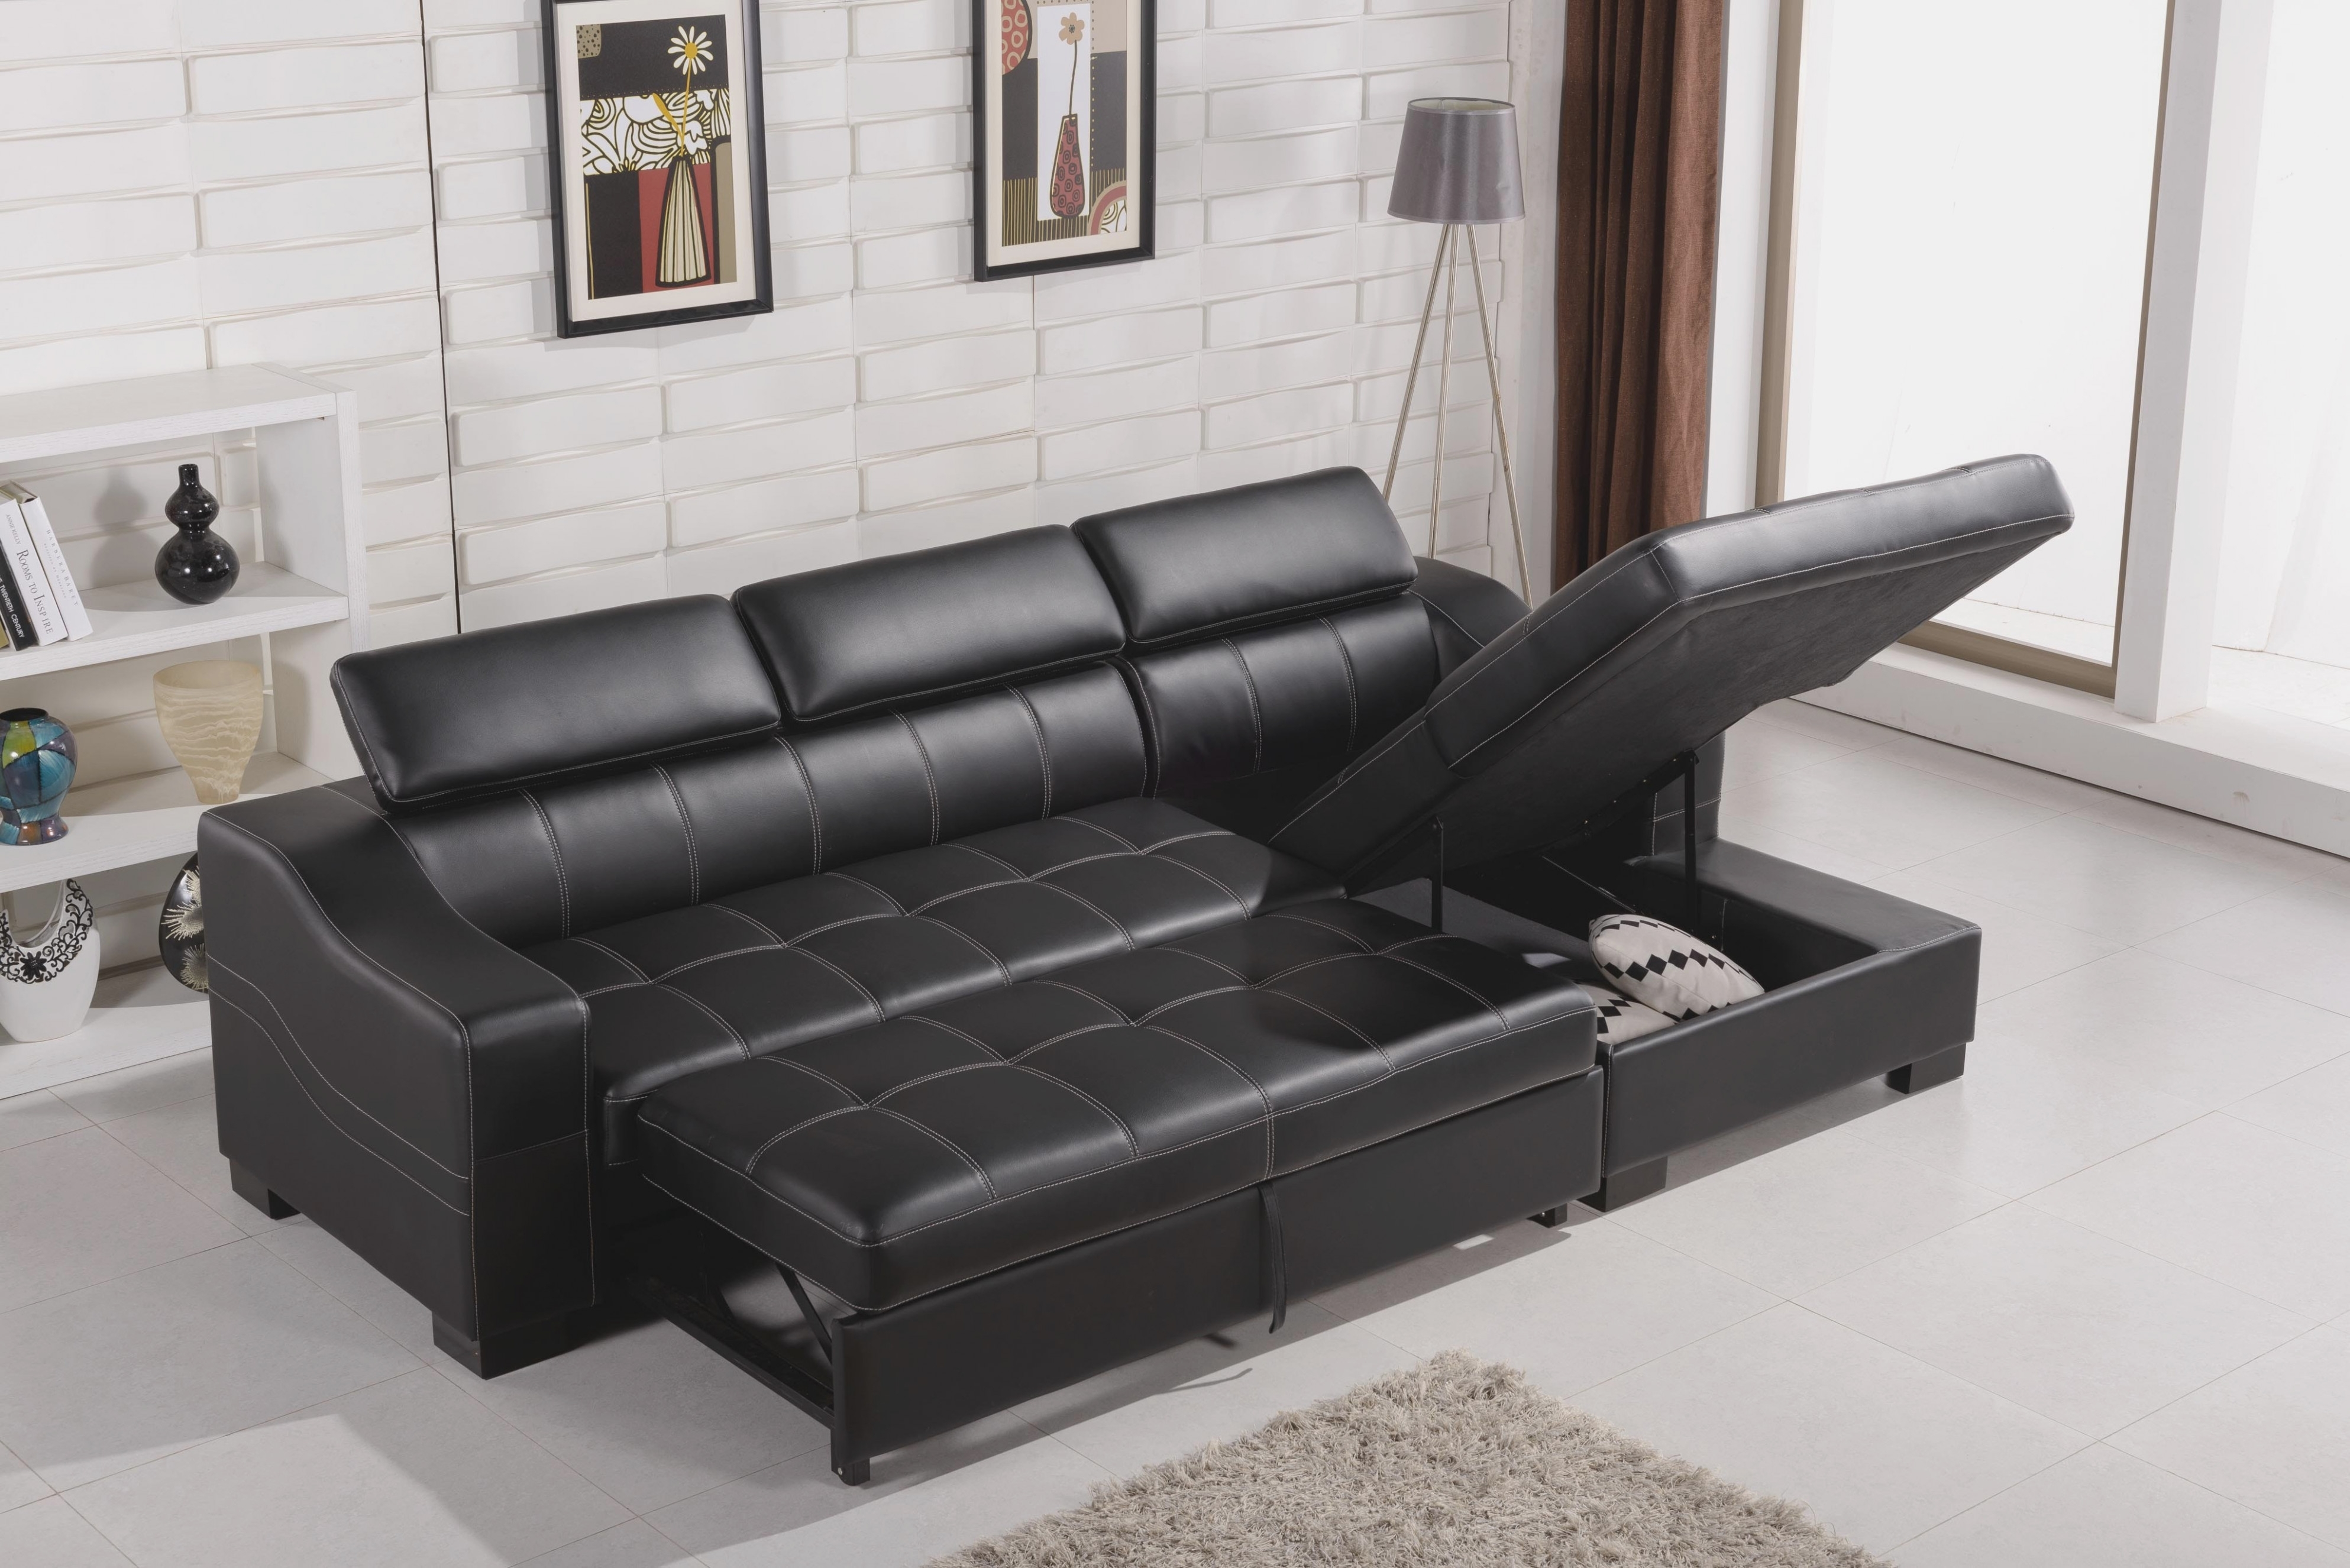 Formidable Sectional Sofa With Storage Chaise With Additional Chaise Regarding Taren Reversible Sofa/chaise Sleeper Sectionals With Storage Ottoman (Image 7 of 25)